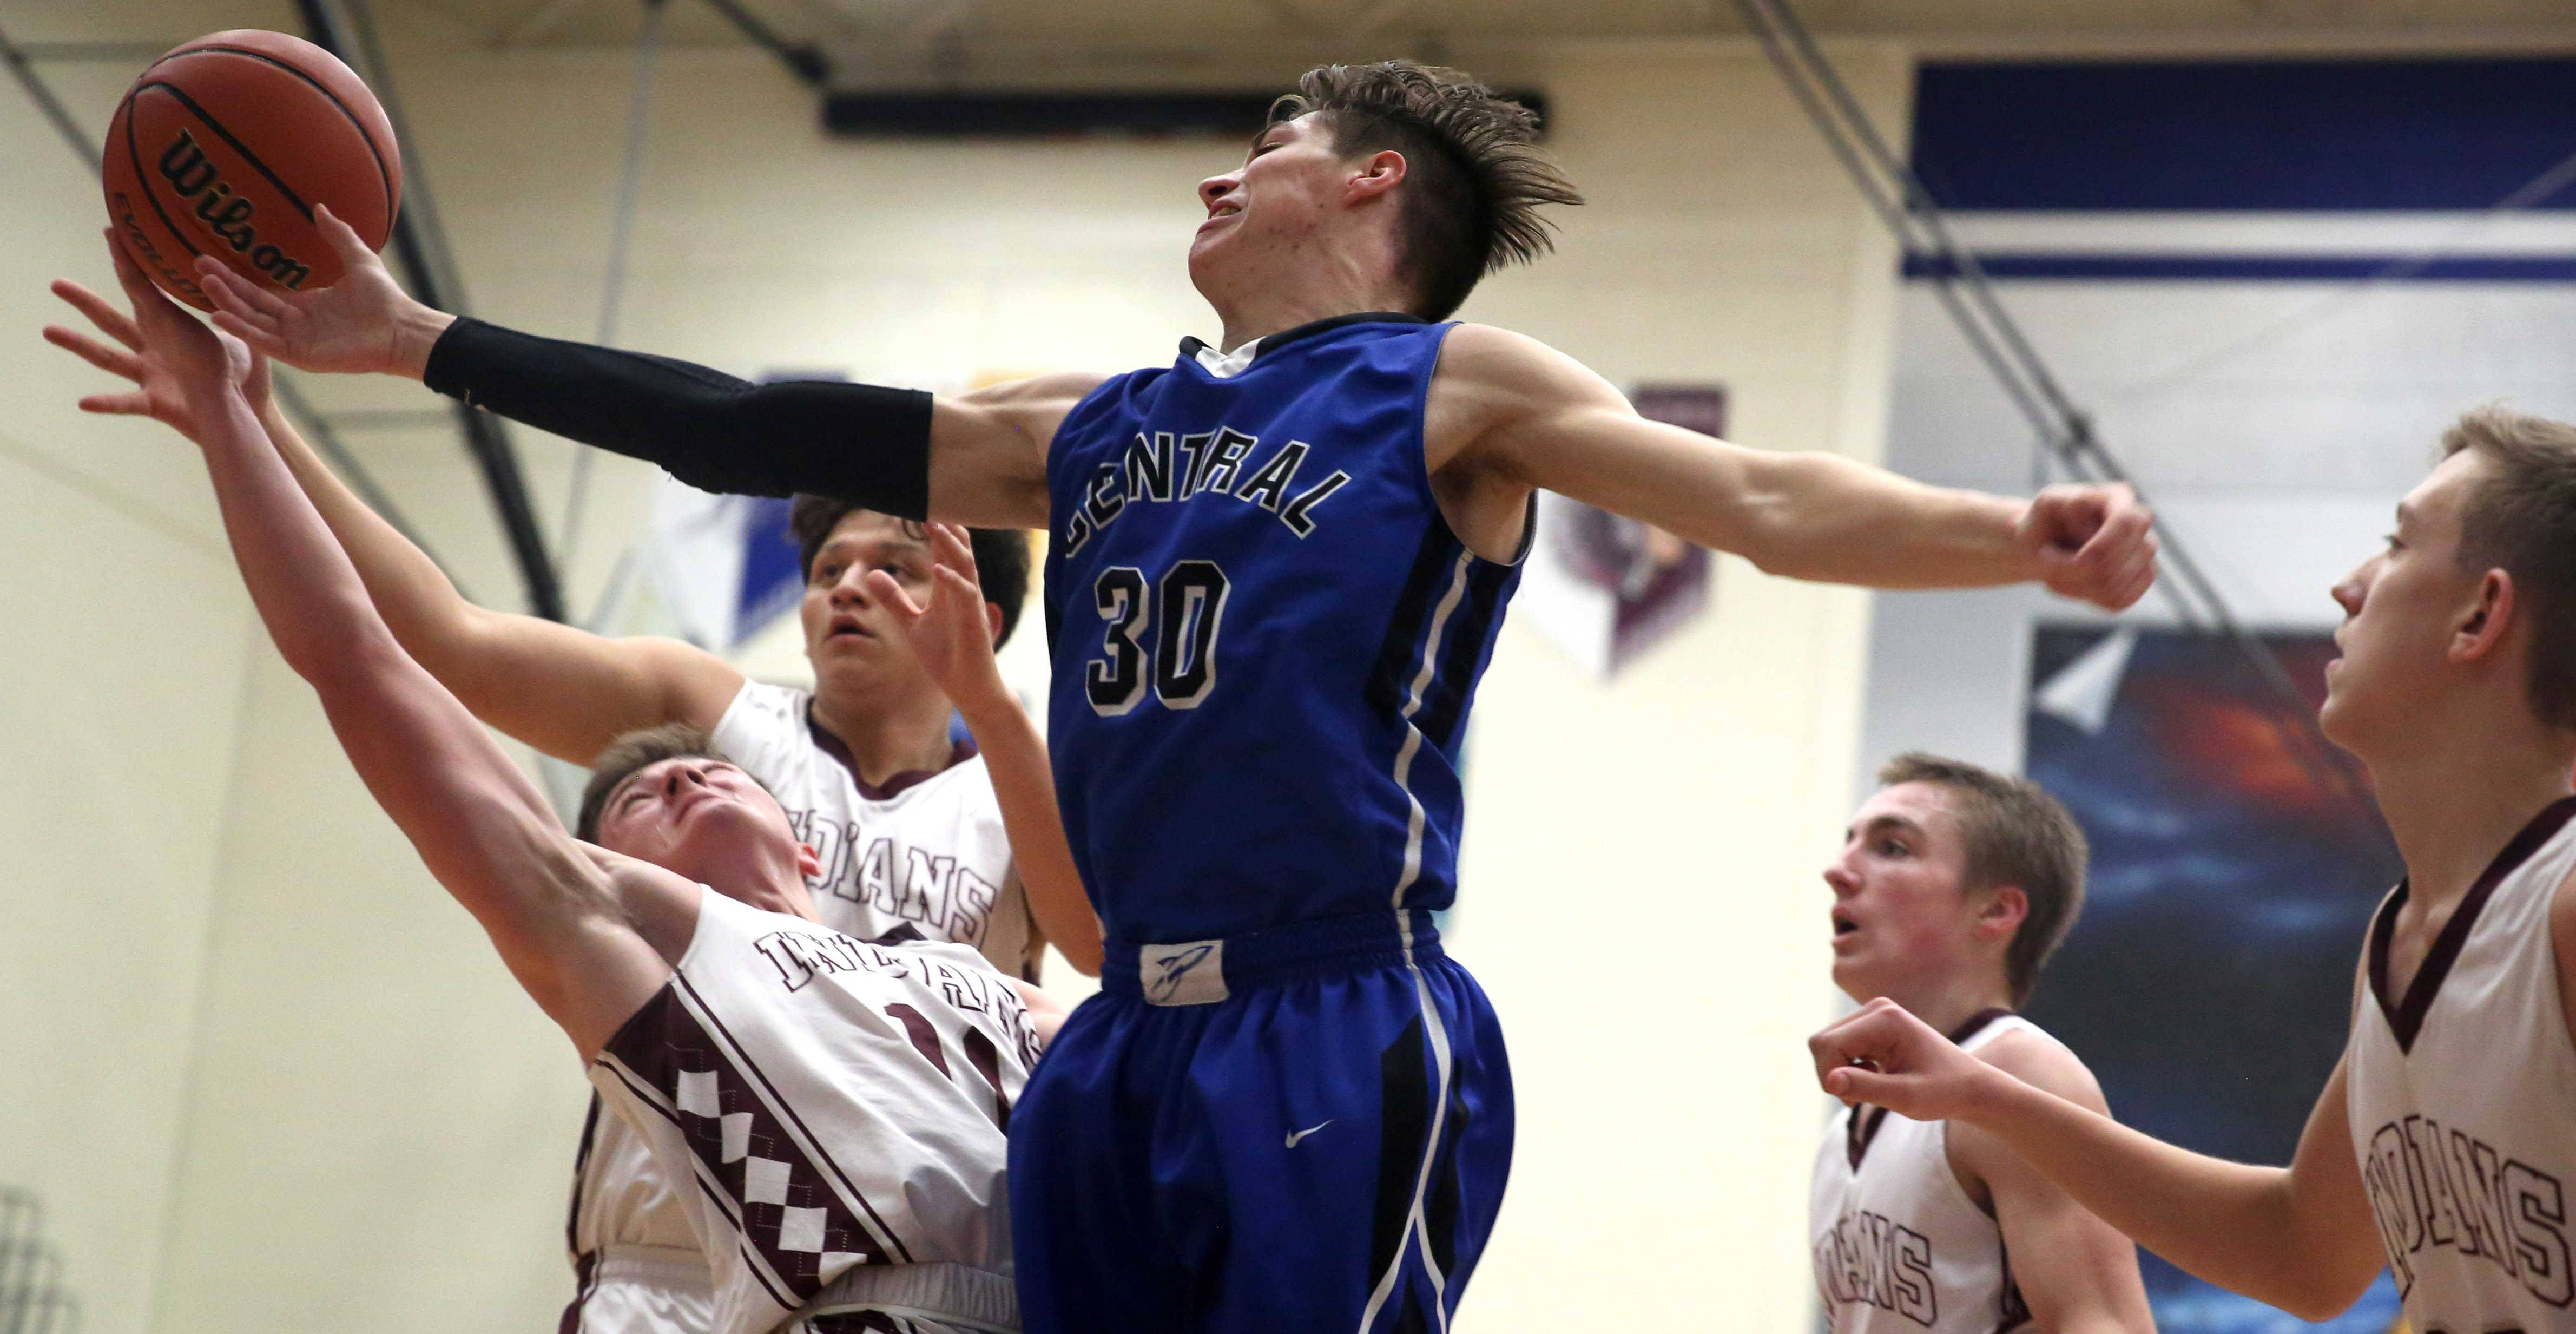 Burlington Central's Michael Kalusa, center, grabs a rebound against Marengo during the title game of the MLK Classic tournament at Burlington Monday night.